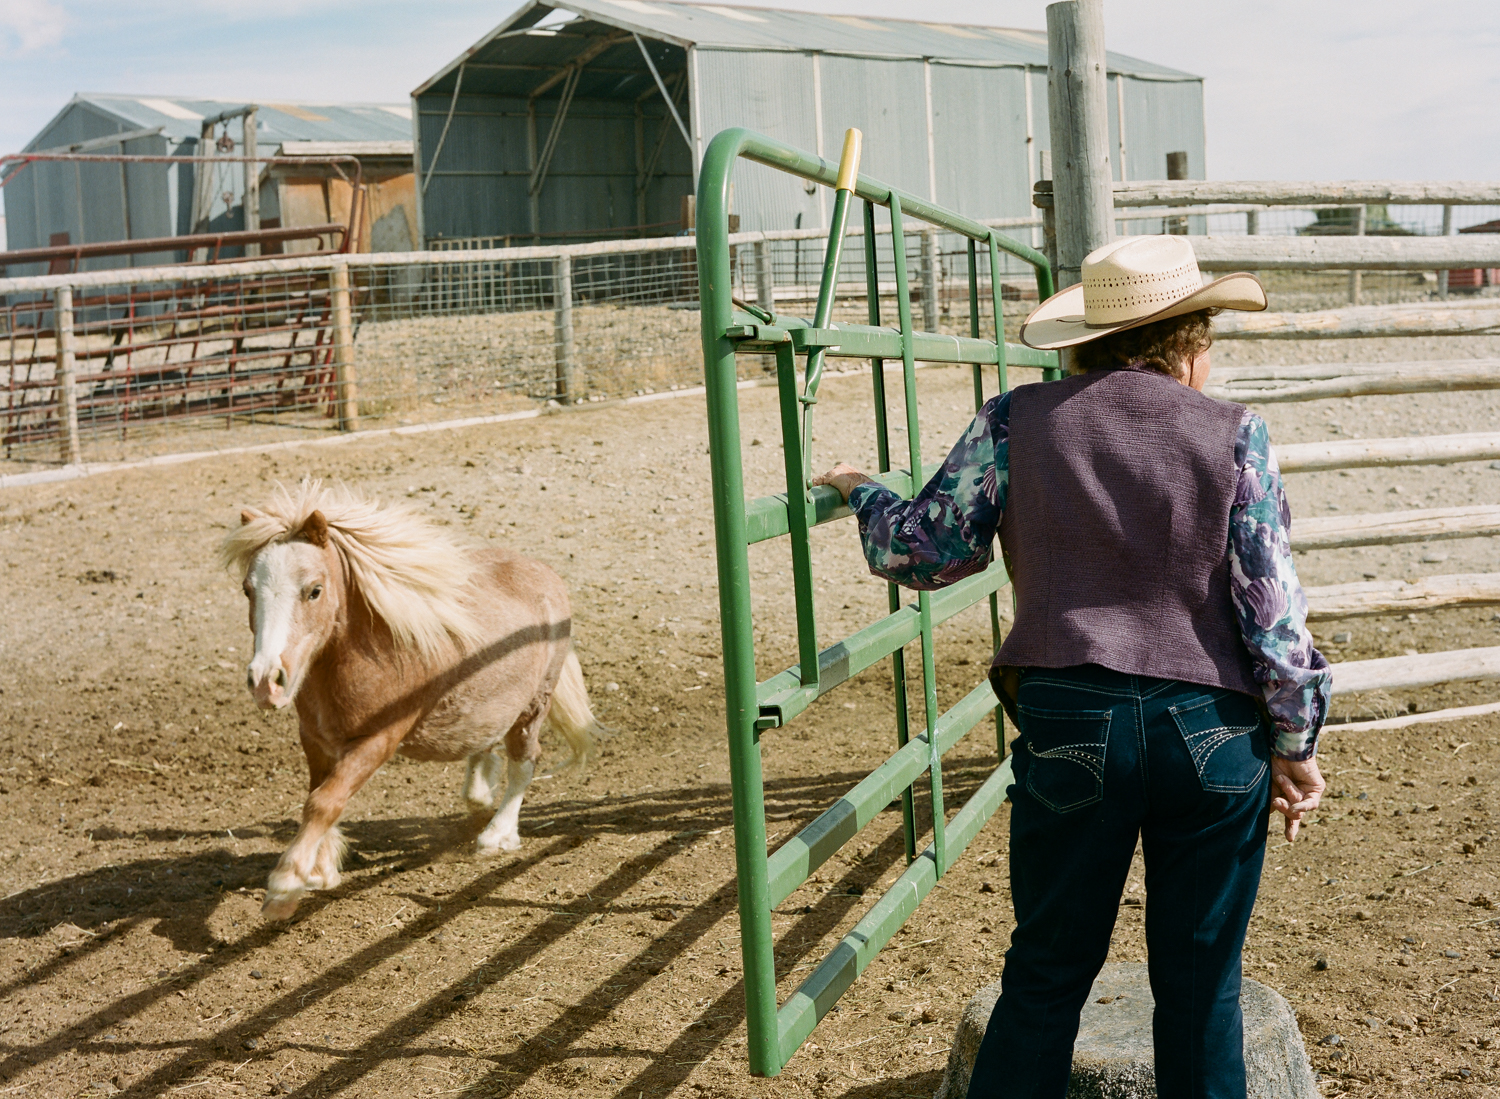 Mickey Thoman working her animals on the Thoman homestead in Sweetwater County, Wyoming.